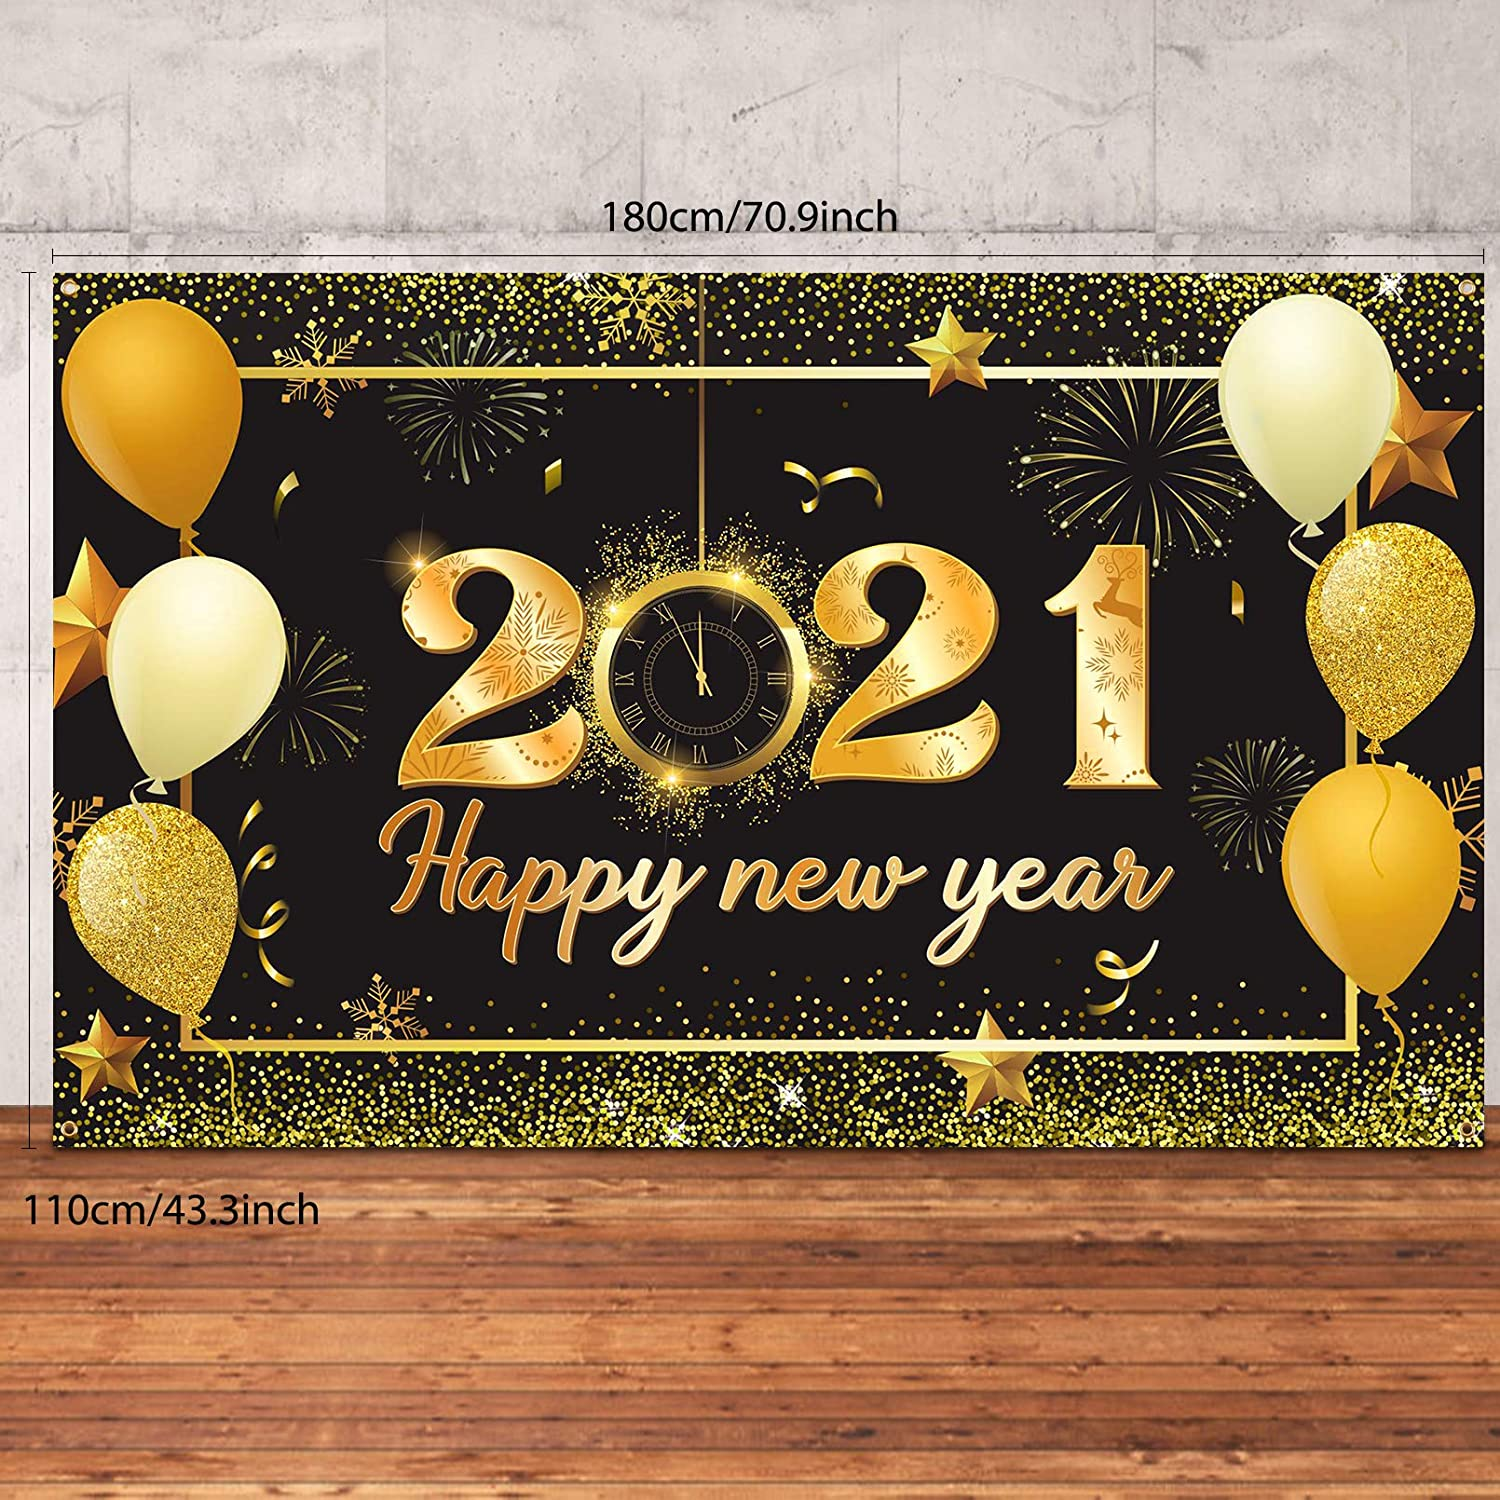 Christmas Fabric 2021 Release Amazon Com Duaiai Happy 2021 New Years Eve Party Decorations Large Fabric Black And Gold Sign 2021 Happy New Year Backdrop Banner Photo Booth Background With Rope For Winter Christmas Happy New Year Party